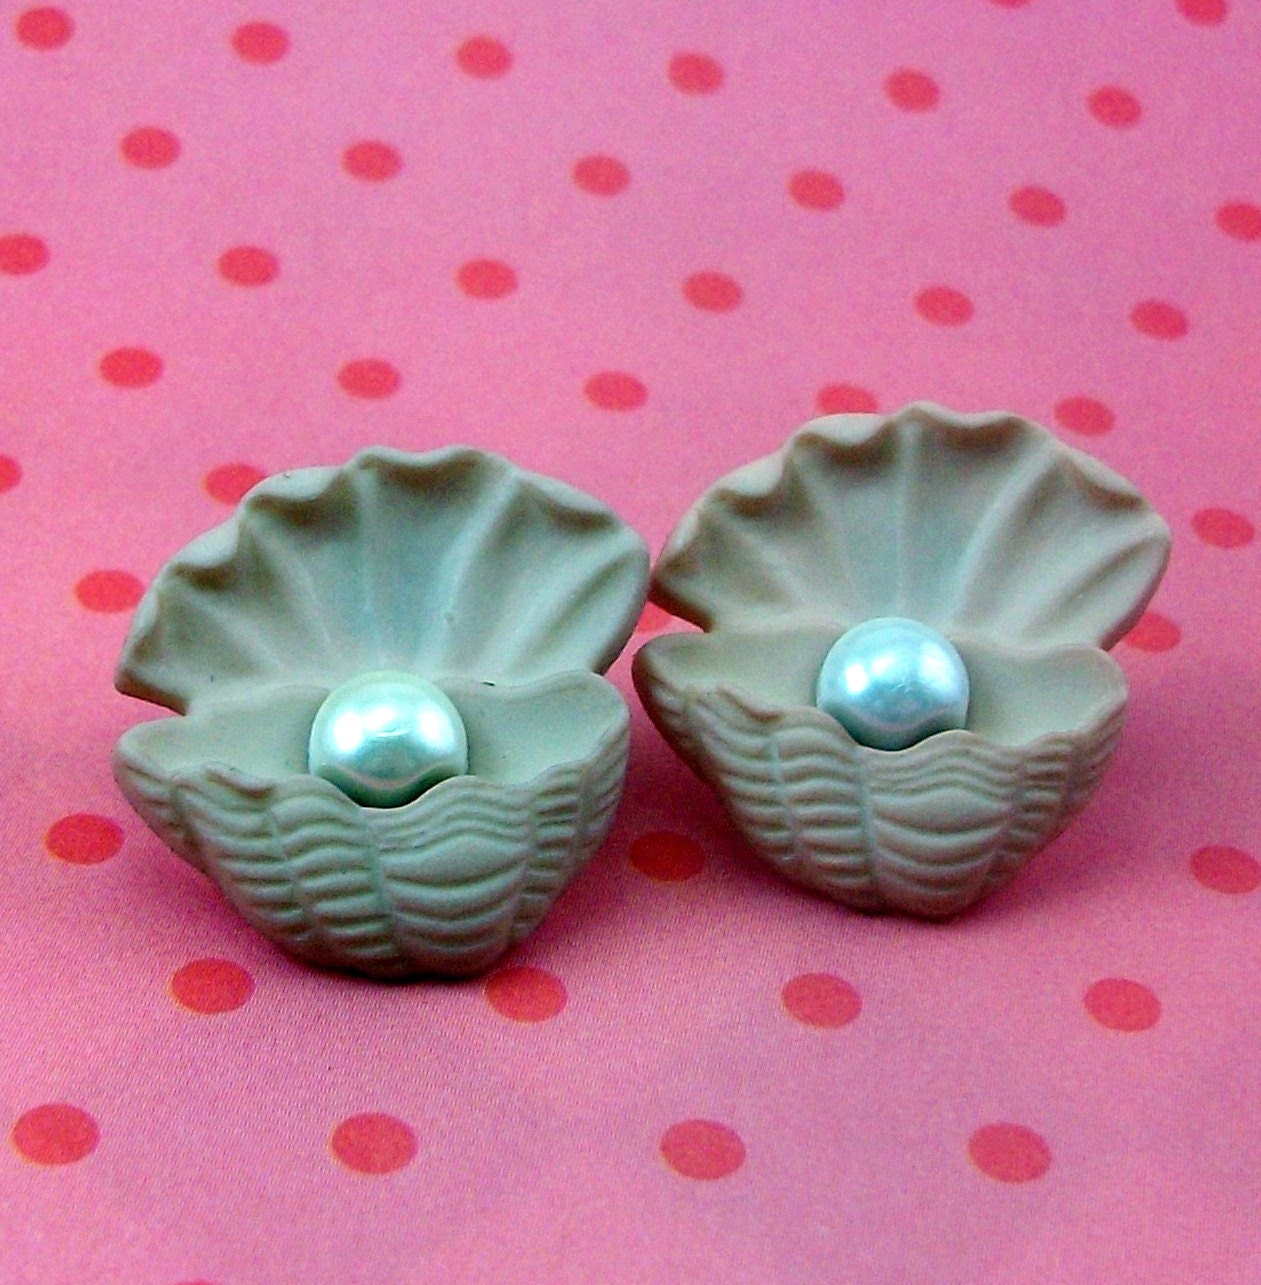 clams-with-pearls-inside